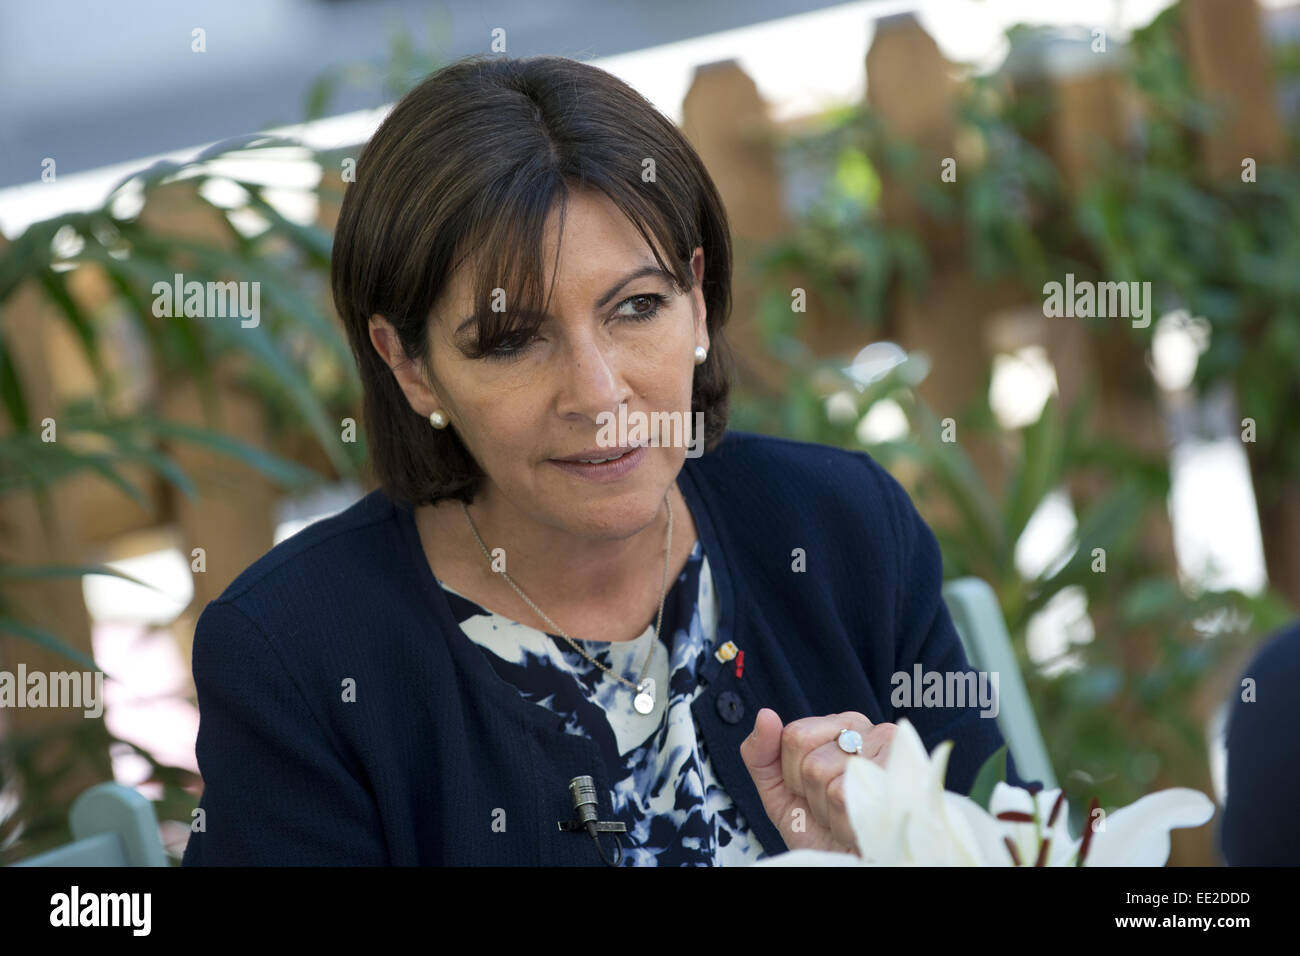 Mayor of Paris Anne Hidalgo attends a press conference at the French Institute of Madrid during her official visit Stock Photo